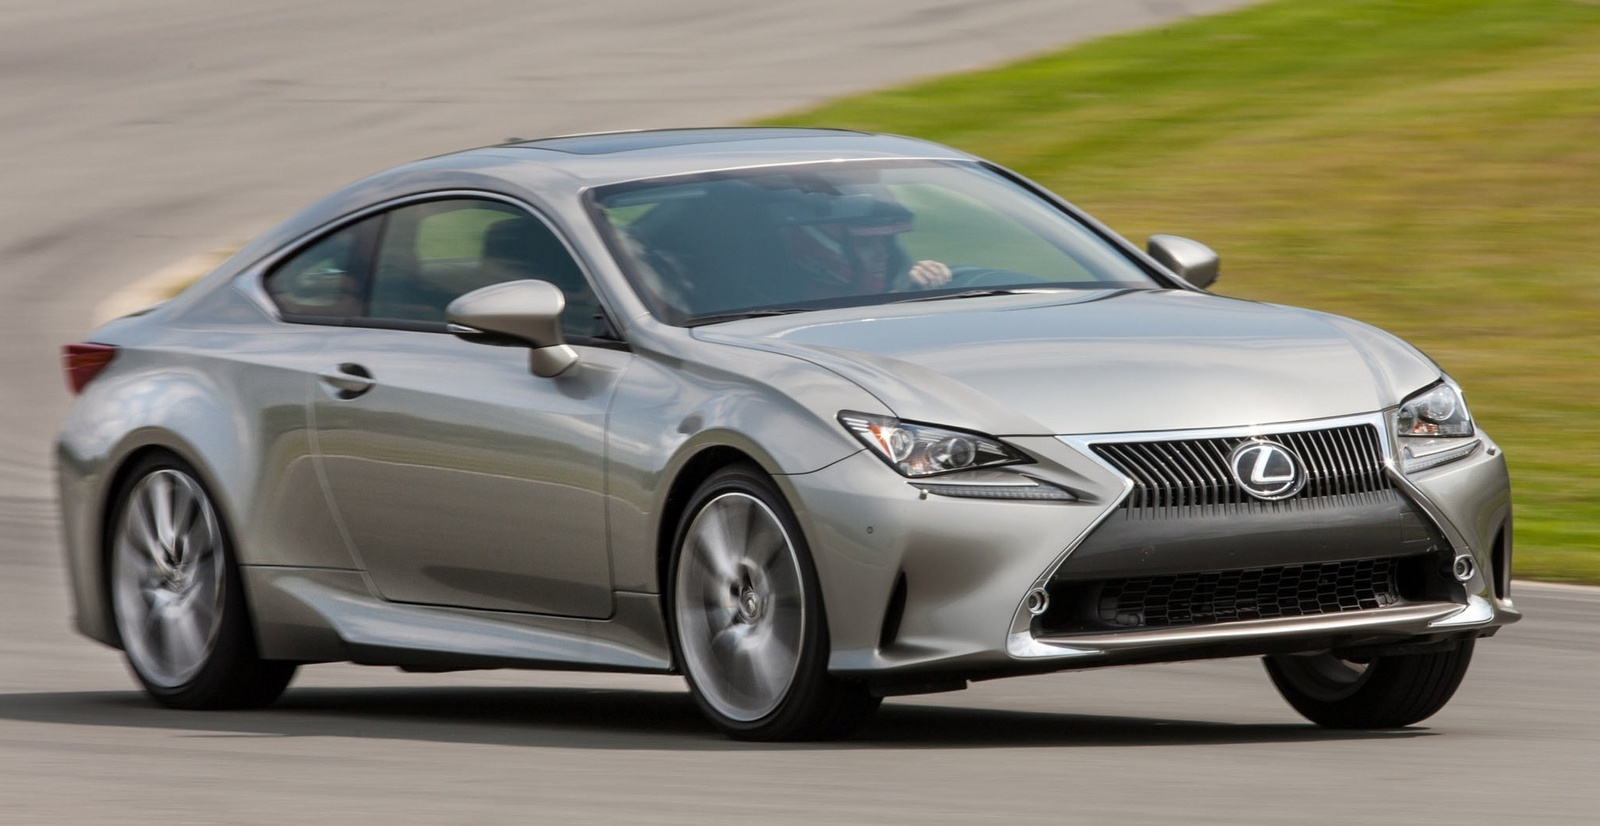 Lexus Rc 350 For Sale >> 2015 Lexus Rc 350 Overview Cargurus